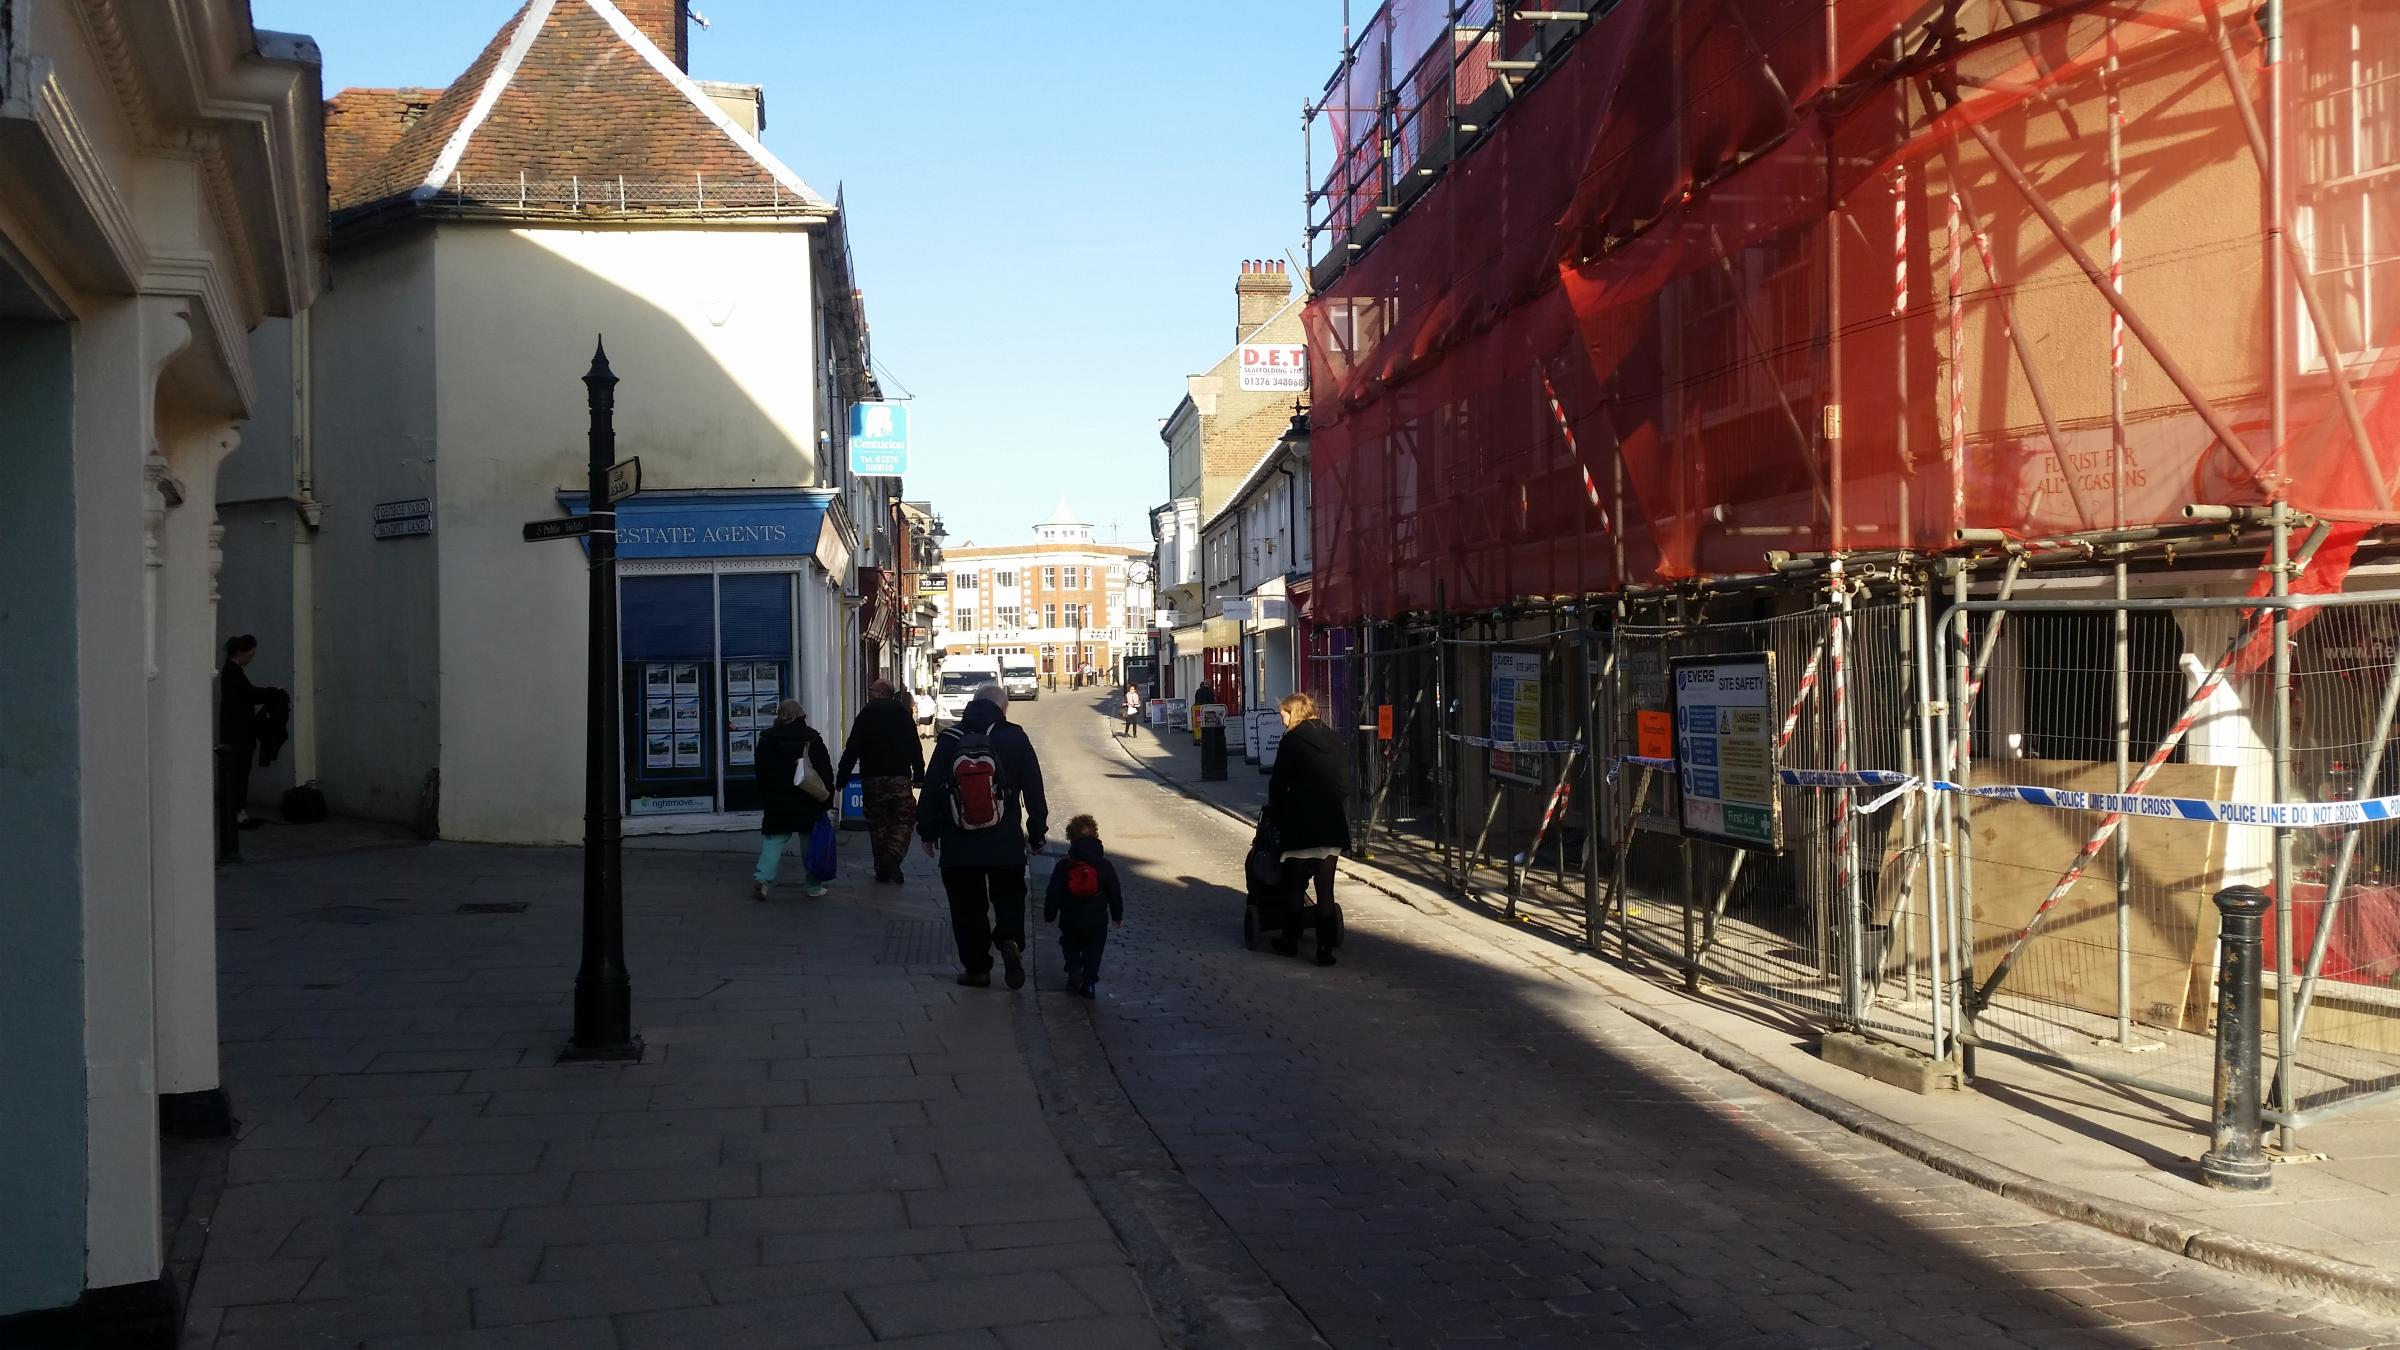 'Now's the time to trial closing High St to traffic'